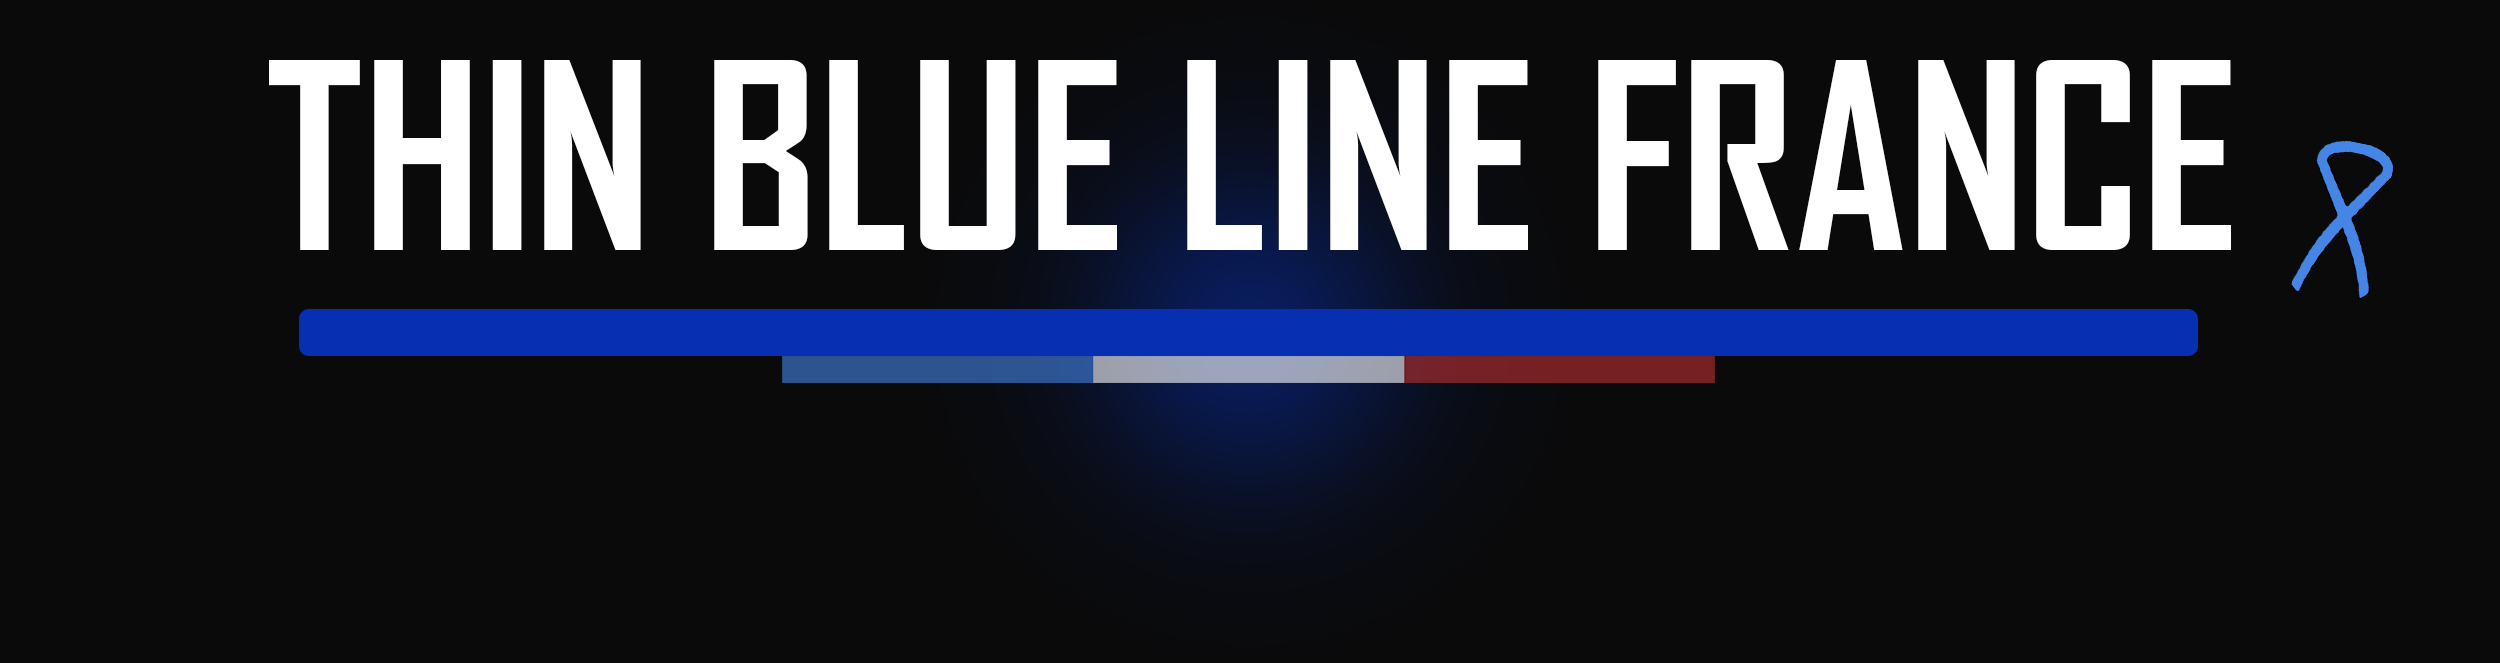 THIN BLUE LINE FRANCE